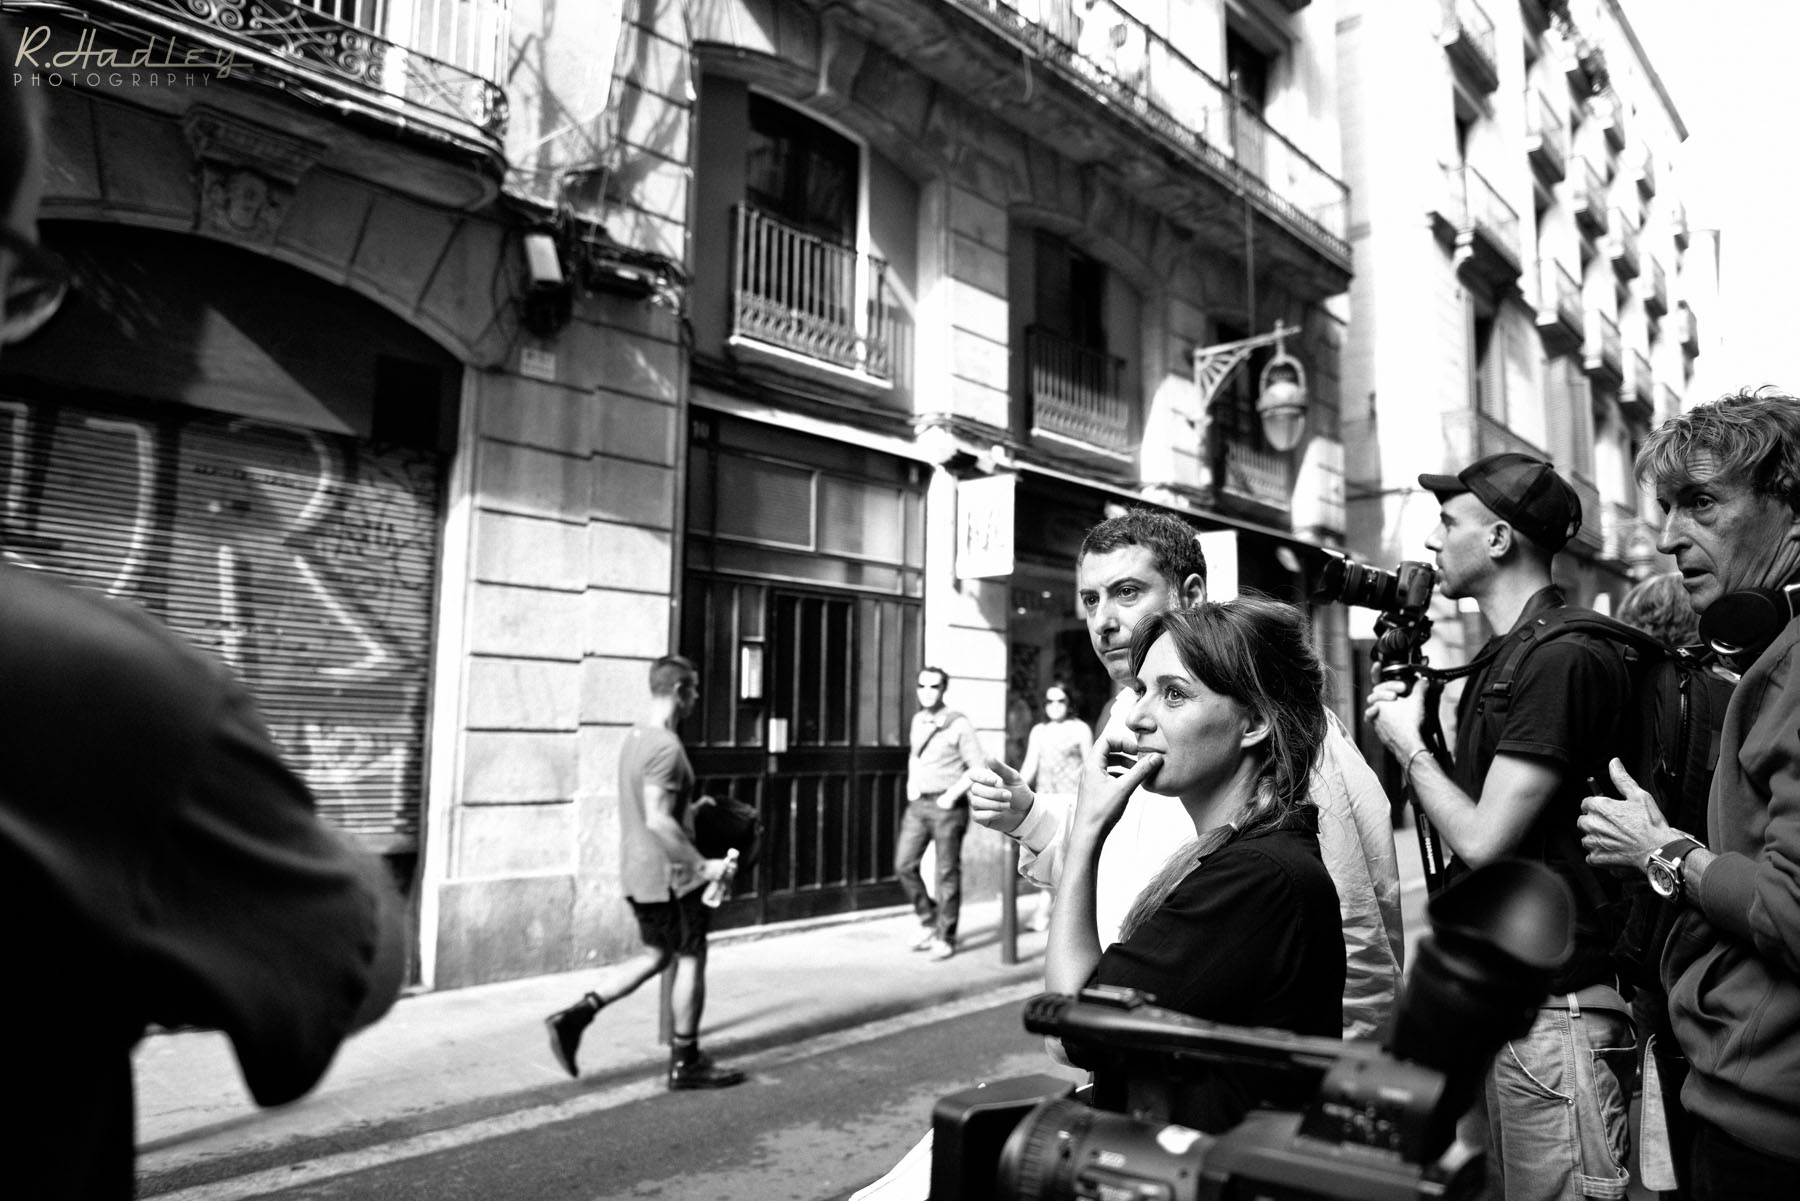 Behind the scenes of a Carolina de Santis film production in Barcelona. On set photographer.